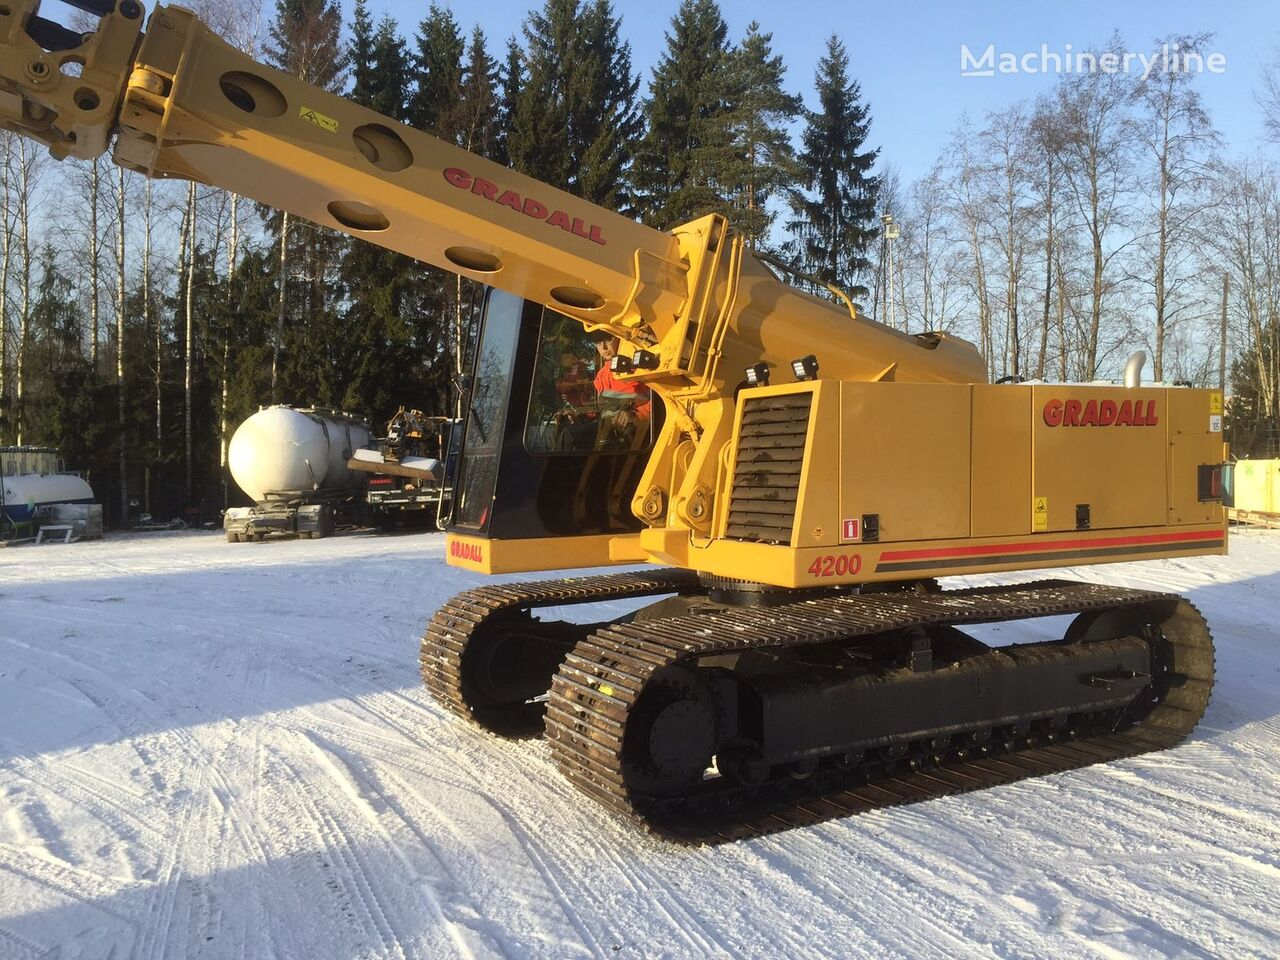 GRADALL XL4200 tracked excavator for rent, tracked digger, crawler